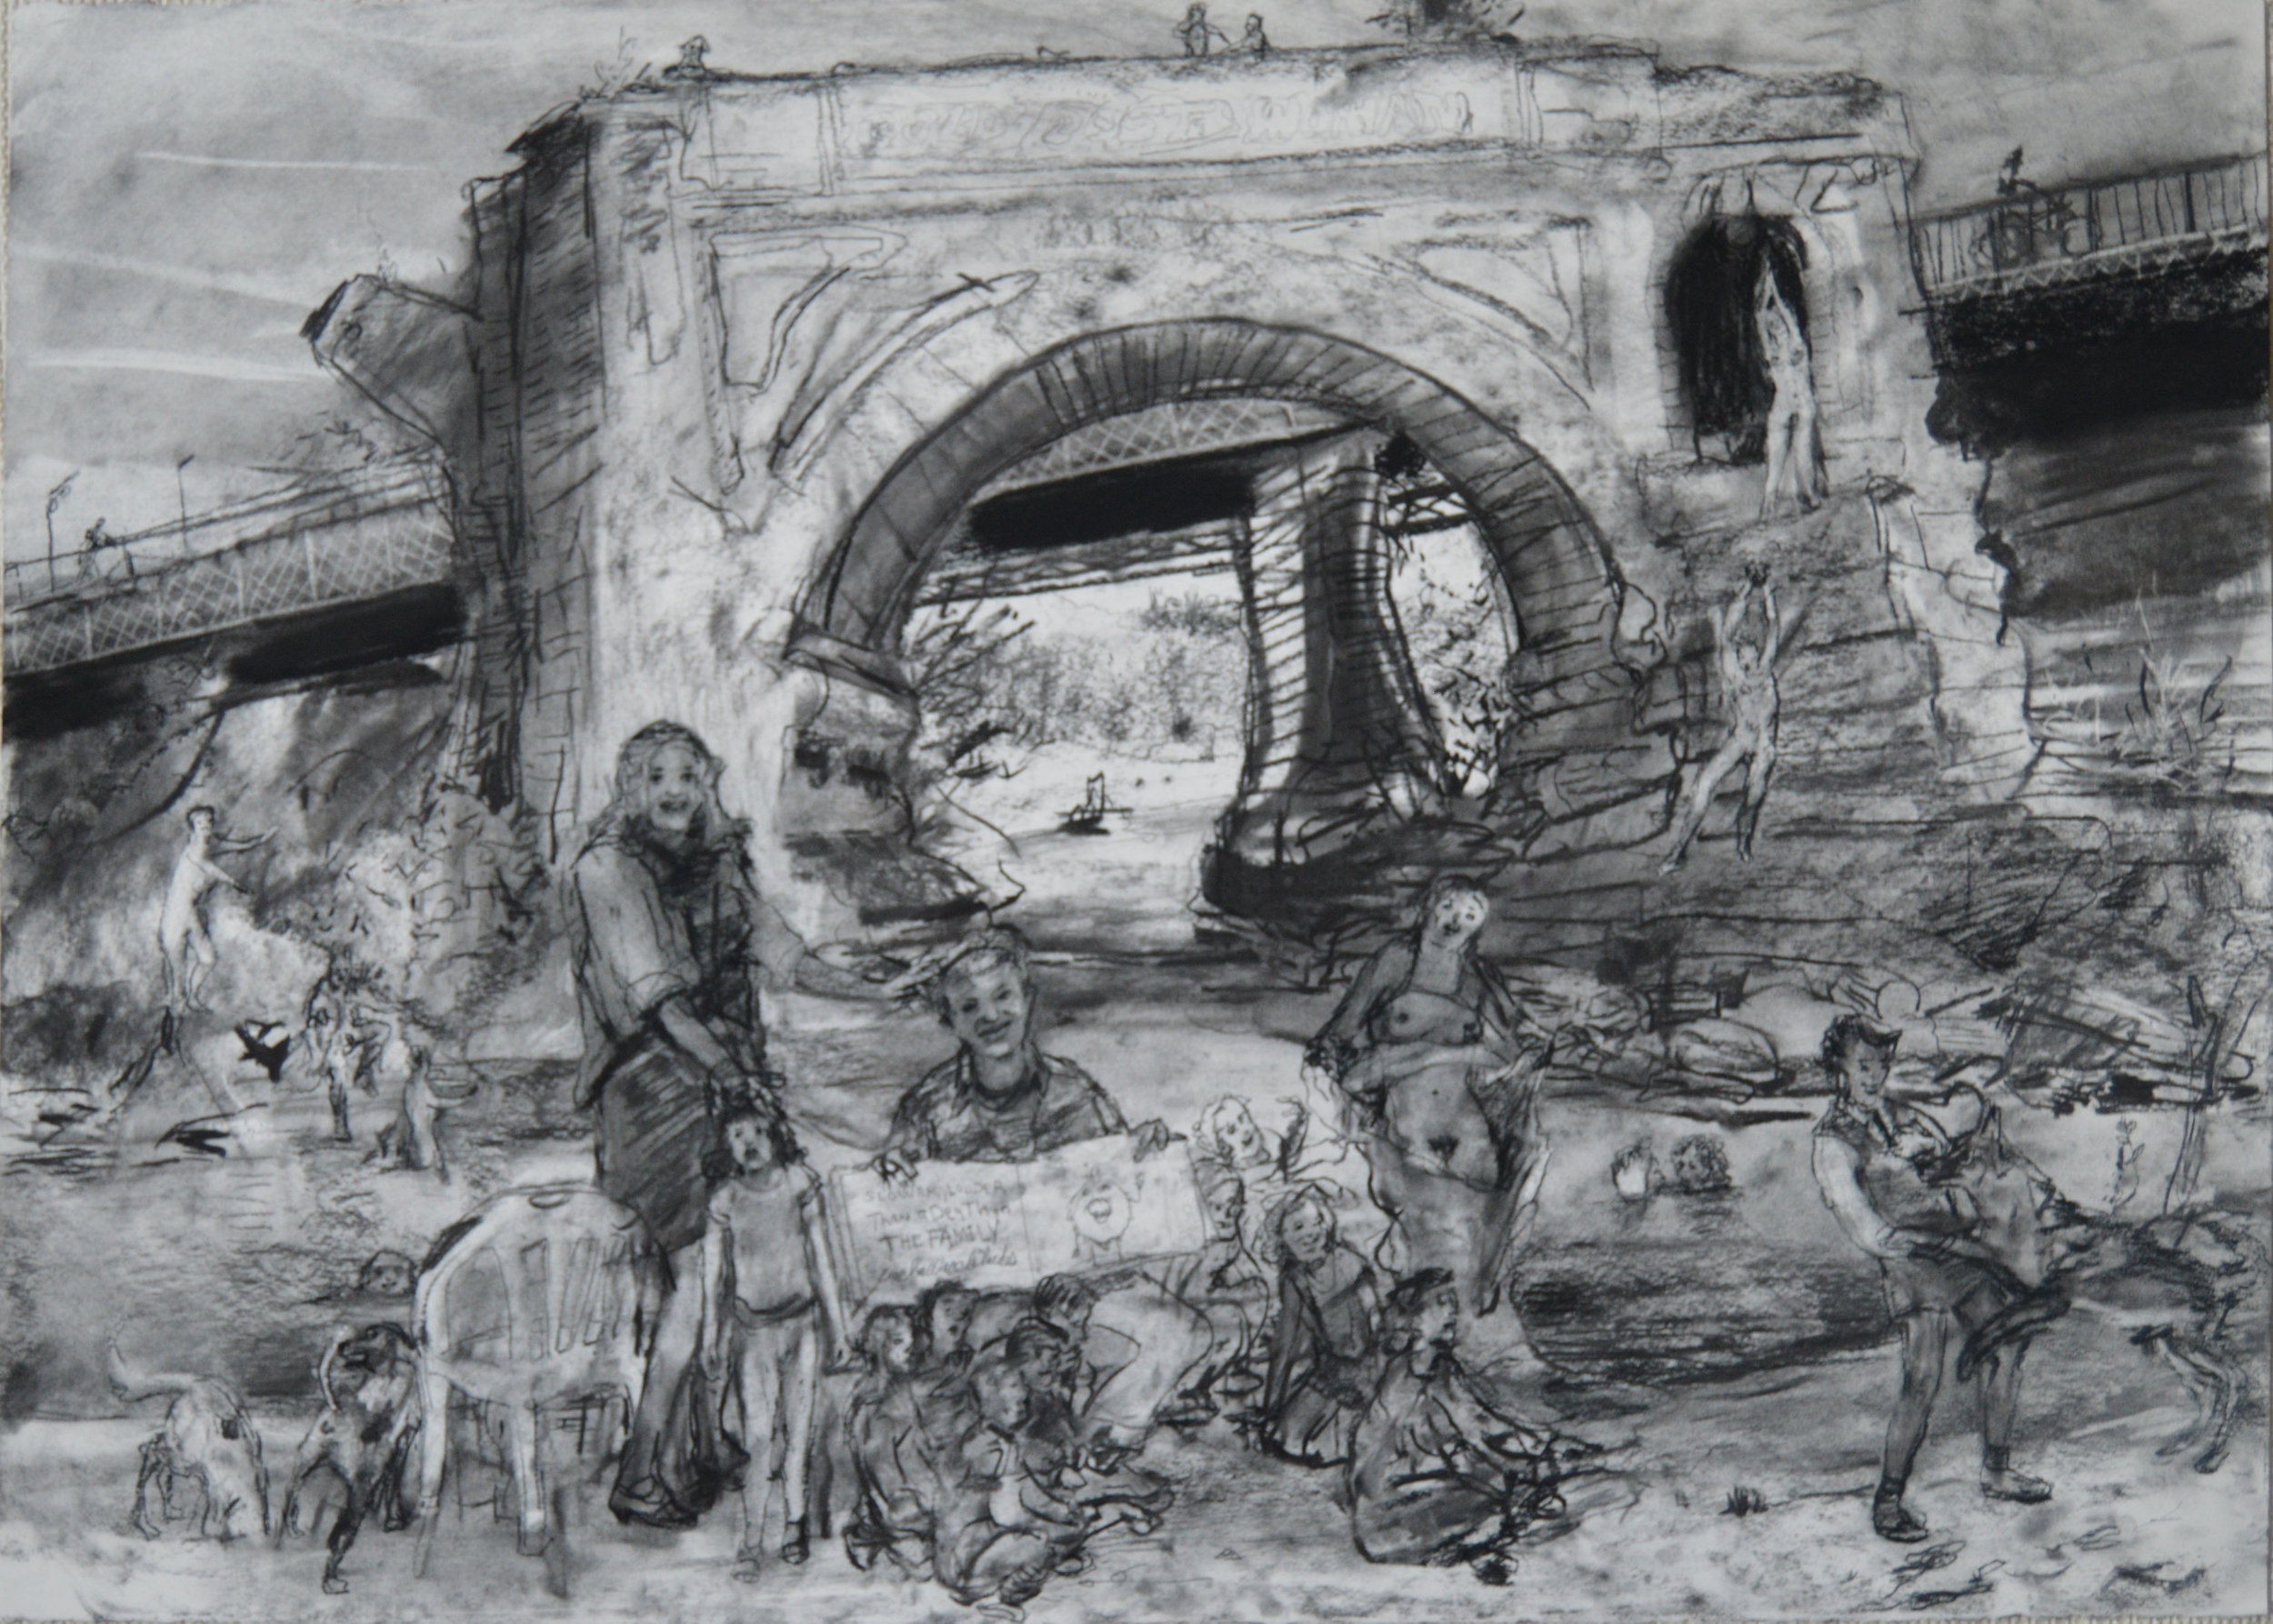 The Lost Bridge Isola Tevere Roma charcoal 28 by 40 inches 2015.jpg